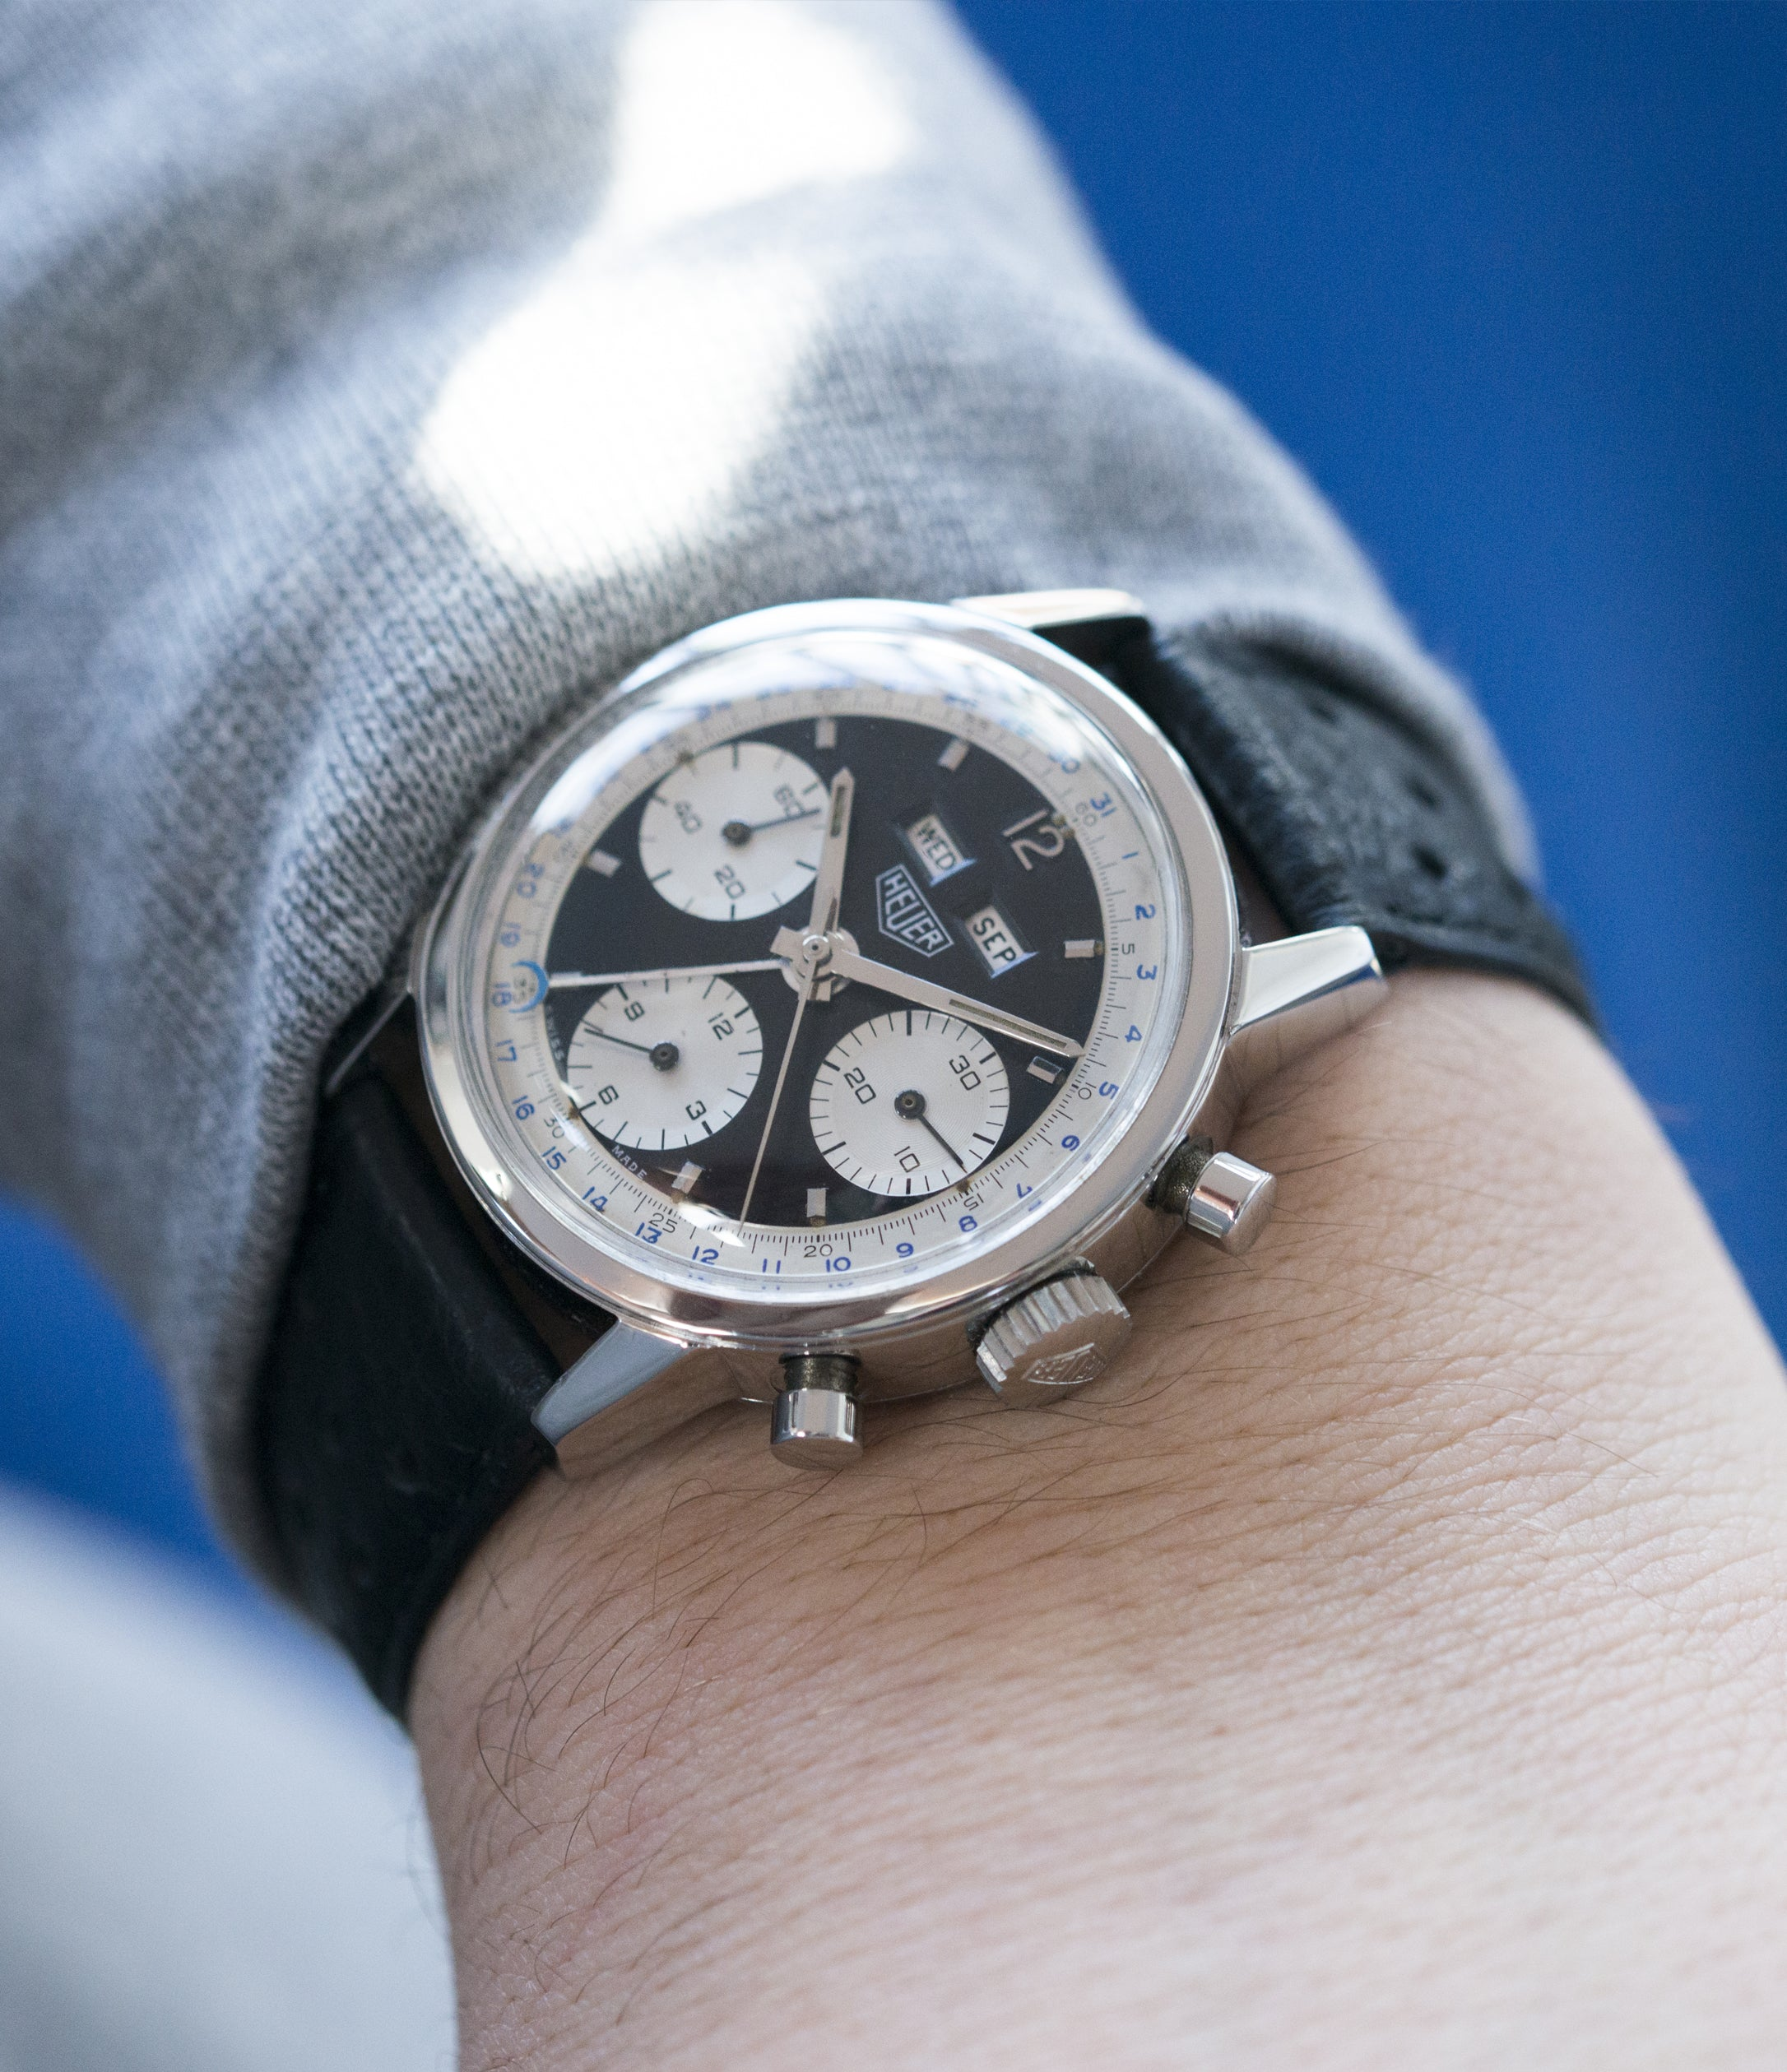 on the wrist vintage Heuer Carrera 2546NS Dato 12 panda dial triple calendar chronograph most complicated Heuer watch for sale online at A Collected Man London UK specialist of rare watches